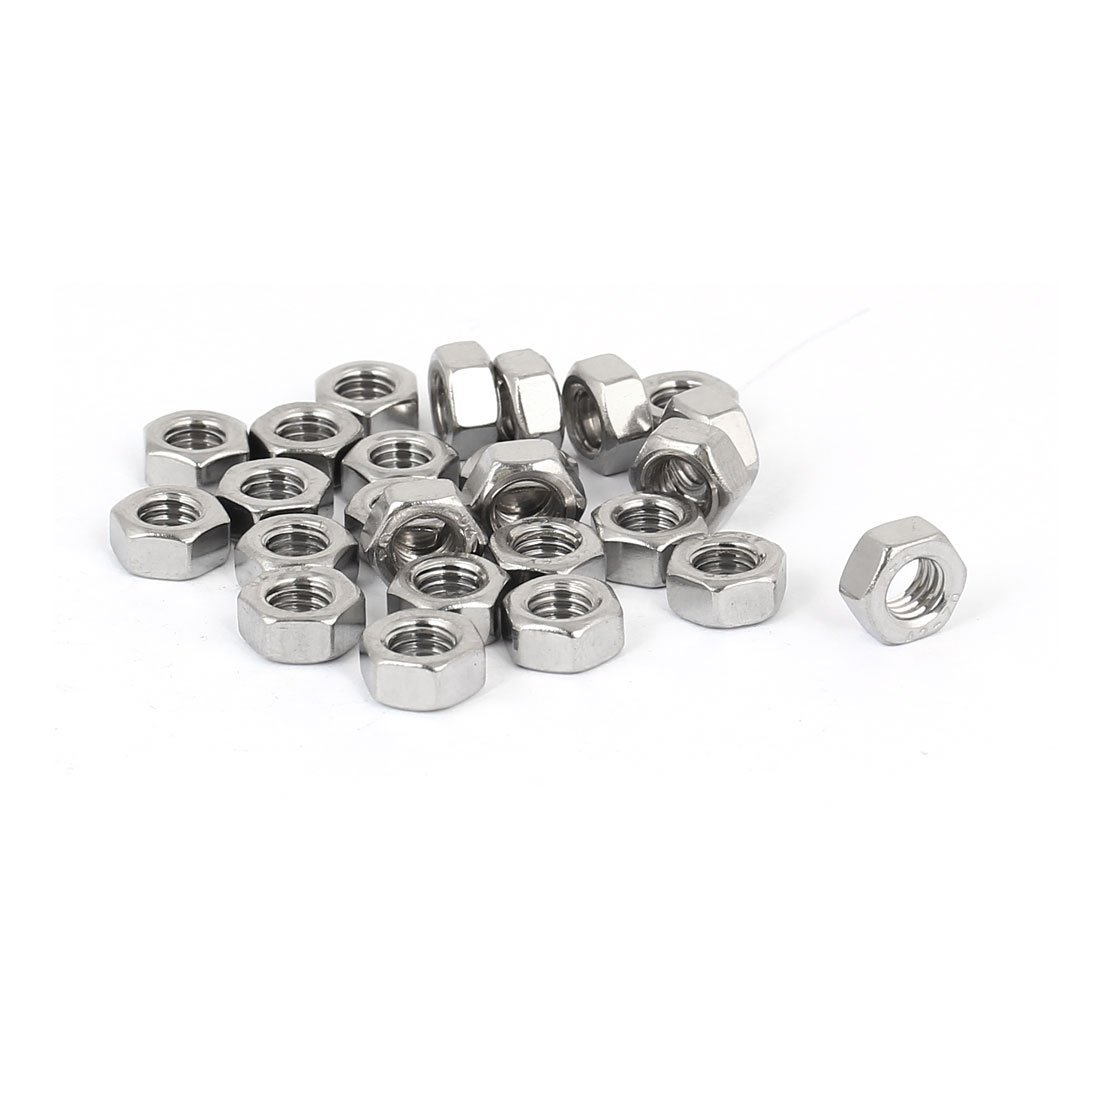 uxcell M5 Thread Diameter 304 Stainless Steel Hex Thin Nut Screw Cap Fastener 25pcs